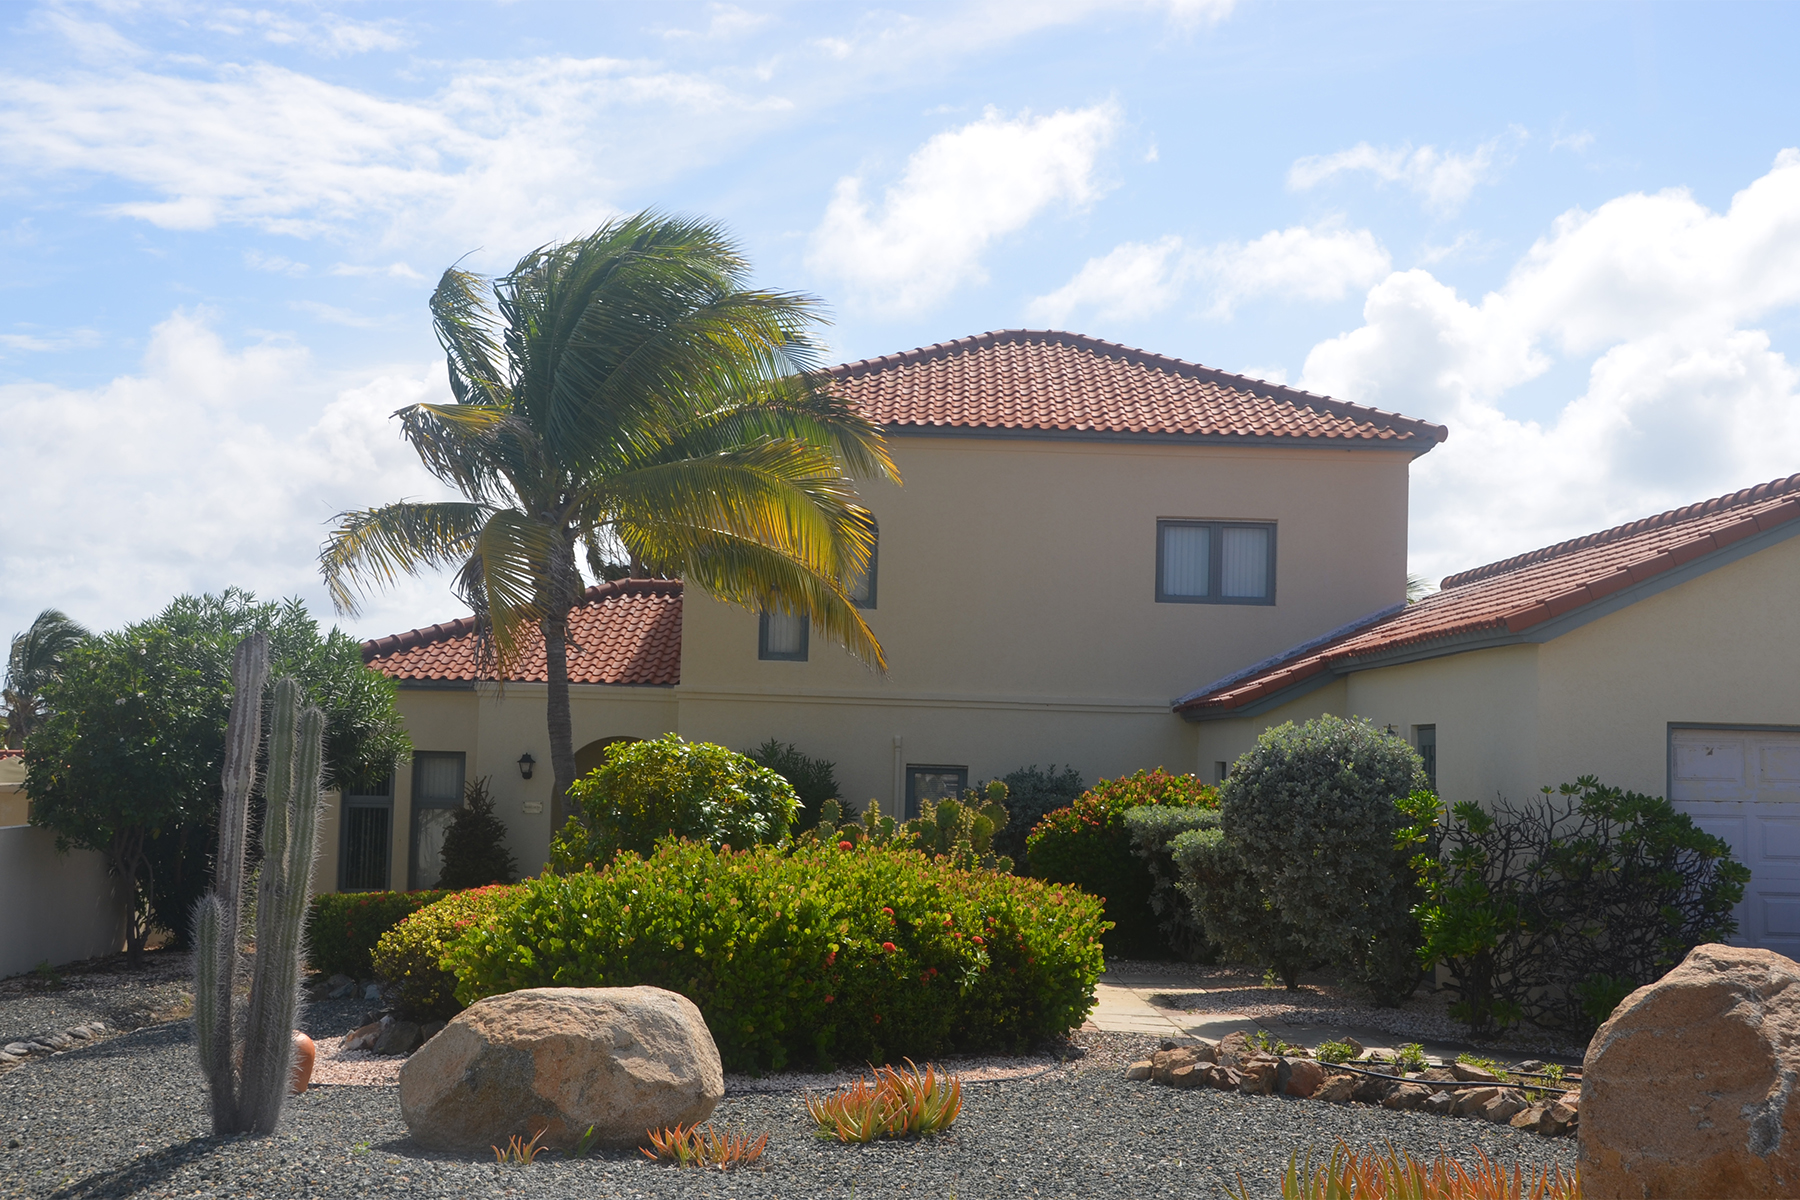 Single Family Home for Sale at MesaVista38 Caya Mesa Bista 38 Malmok, Aruba 21000 Aruba